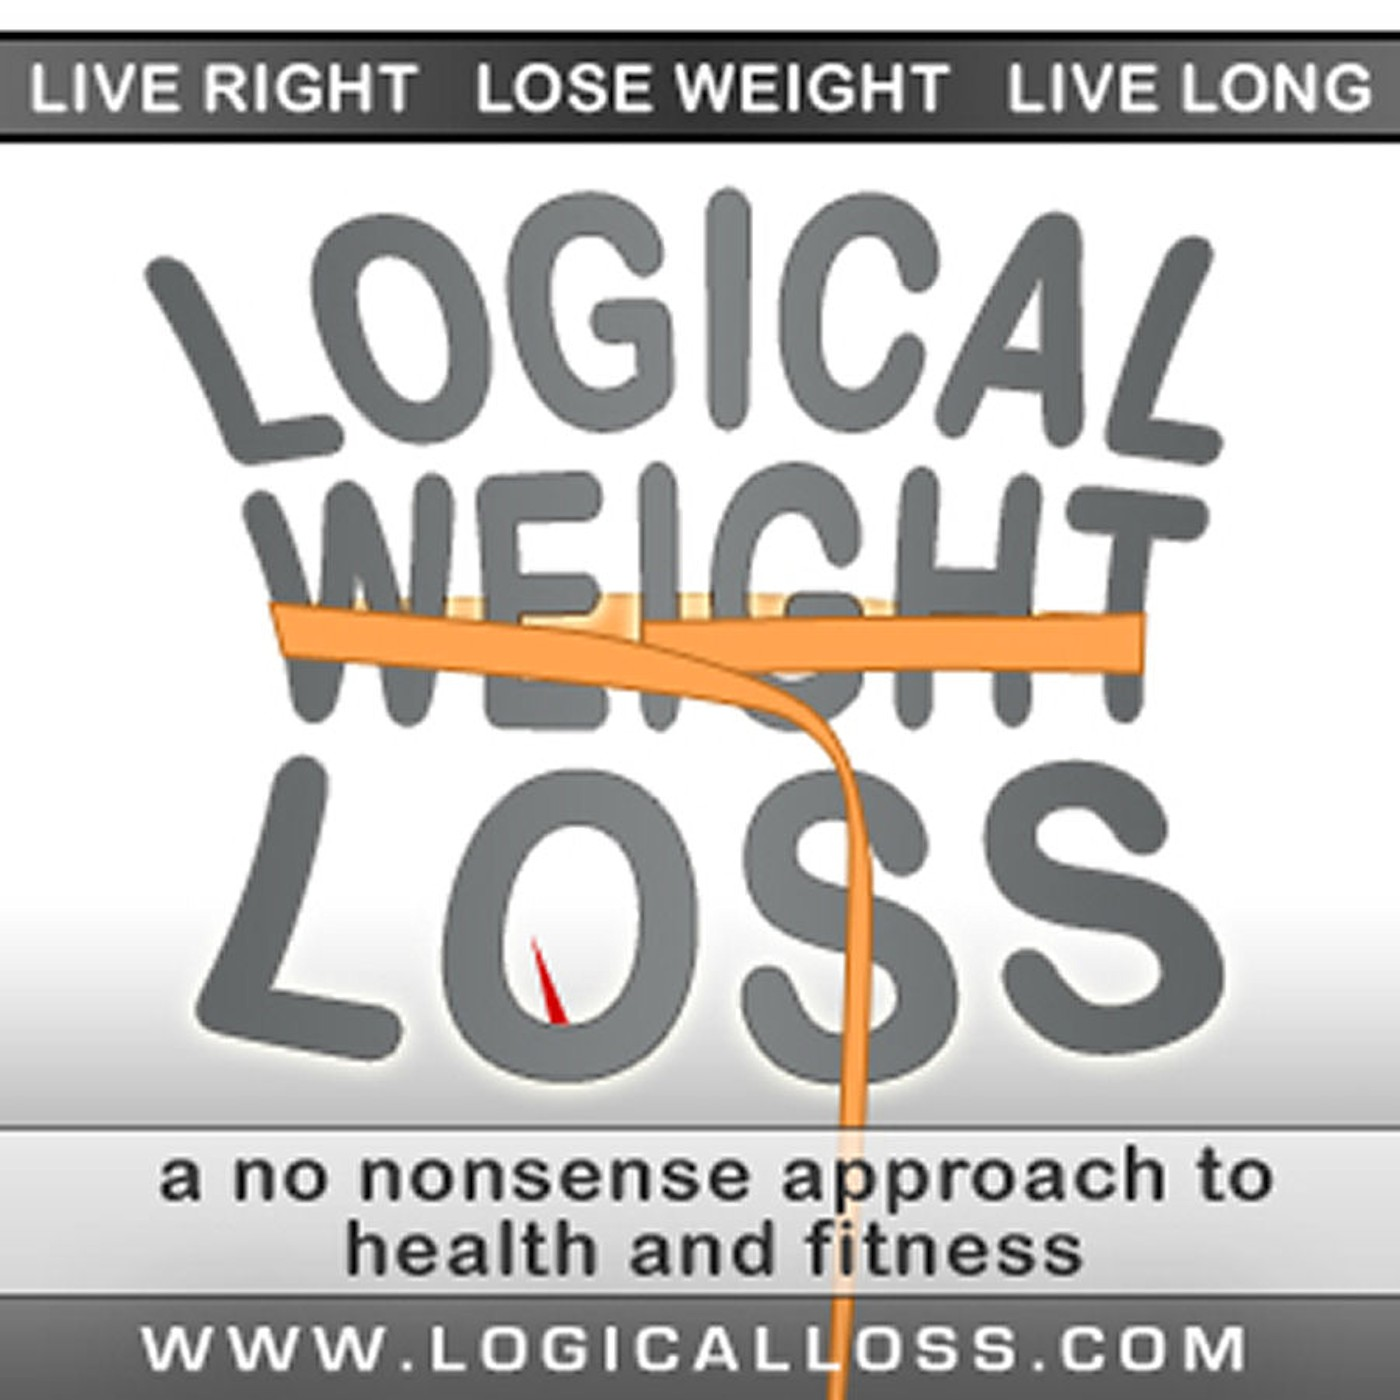 Artwork for 12 Week Weight Loss Challenge